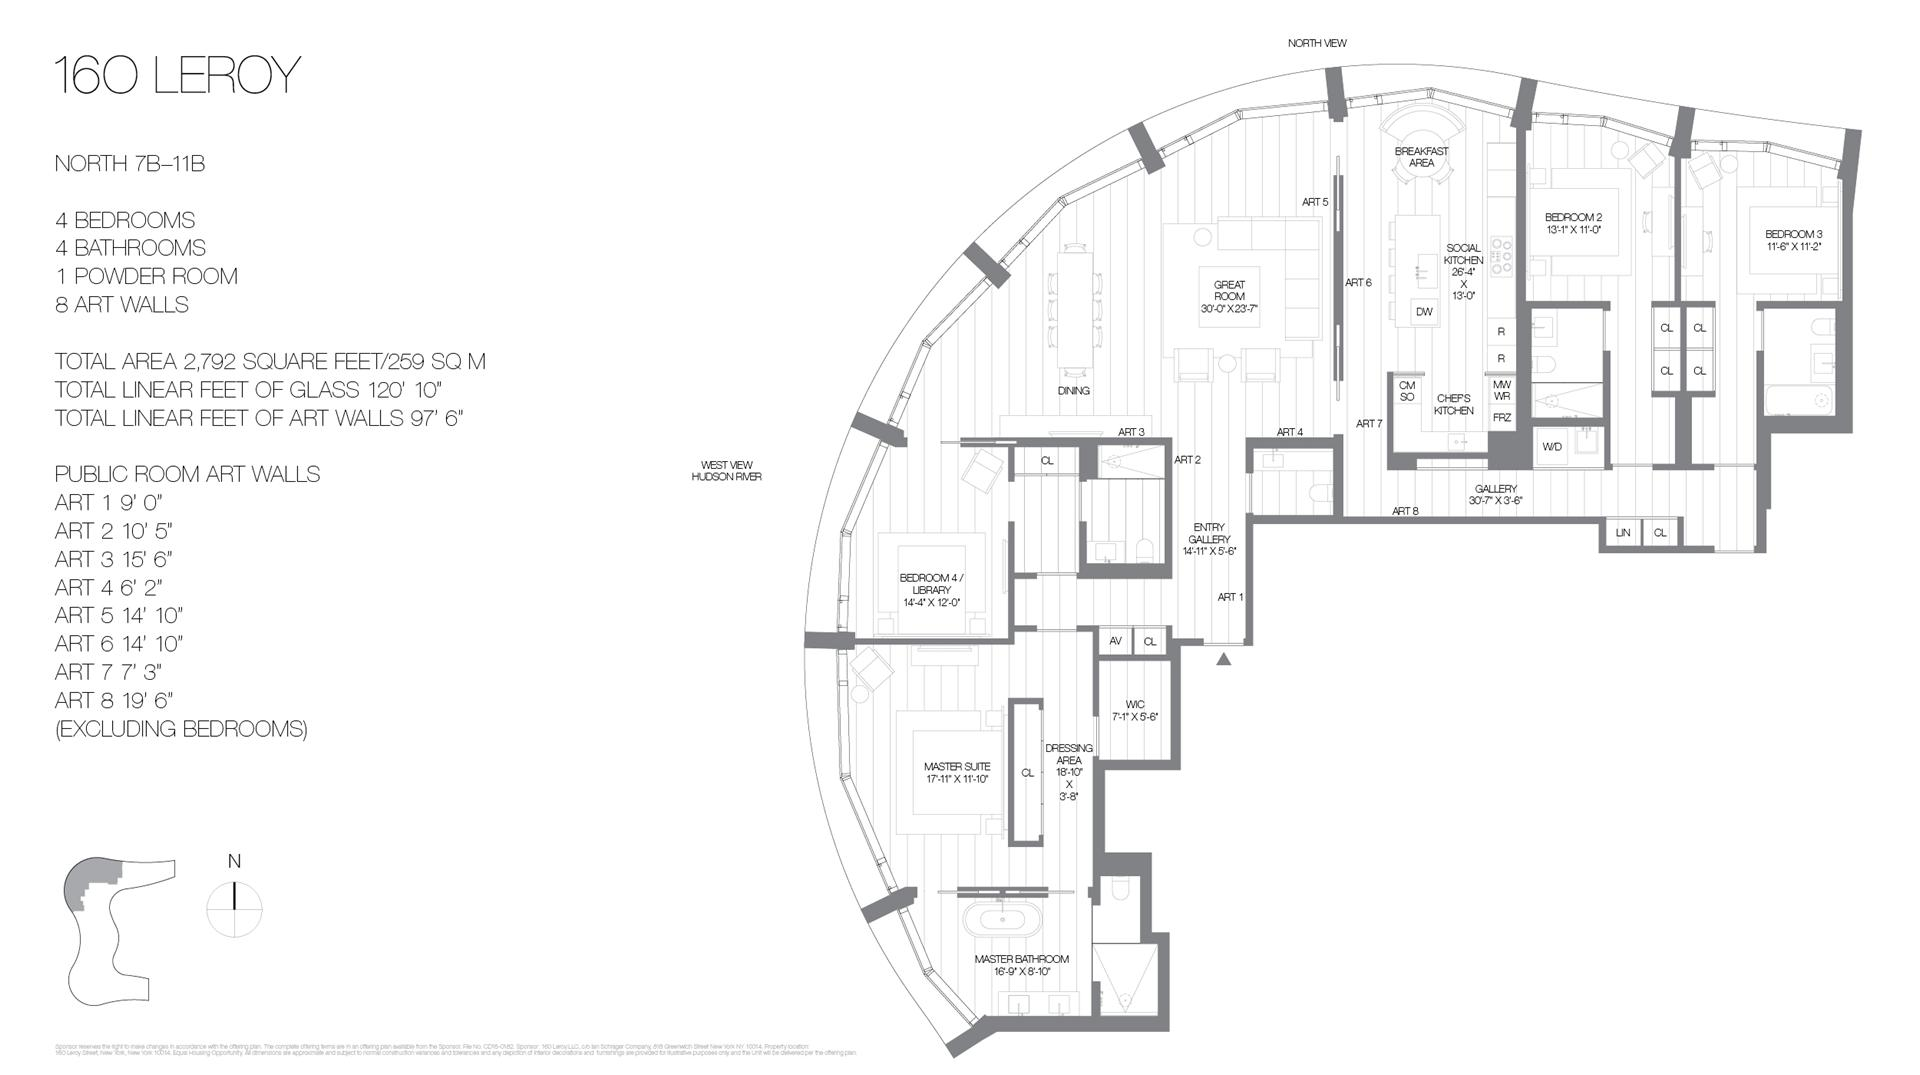 Floor plan of 160 Leroy St, NORTH11B - West Village - Meatpacking District, New York